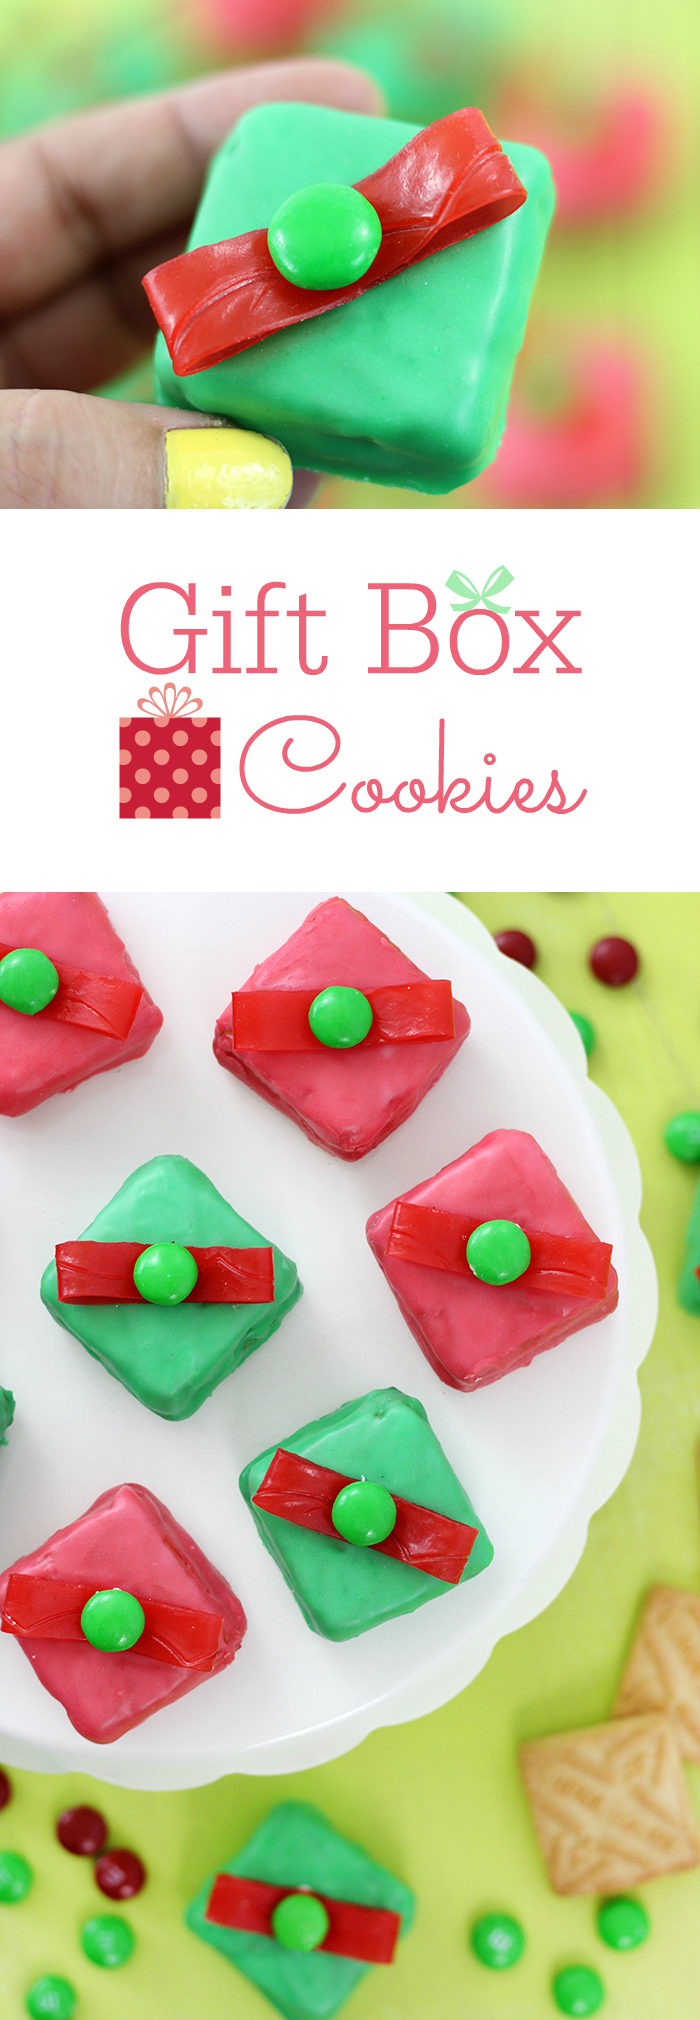 Gift Box Cookies. Make these festive gift box cookies easily with Lorna Doone Cookies  sc 1 st  Cutefetti & Christmas Gift Box Cookies | LIFESTYLE BLOG Aboutintivar.Com